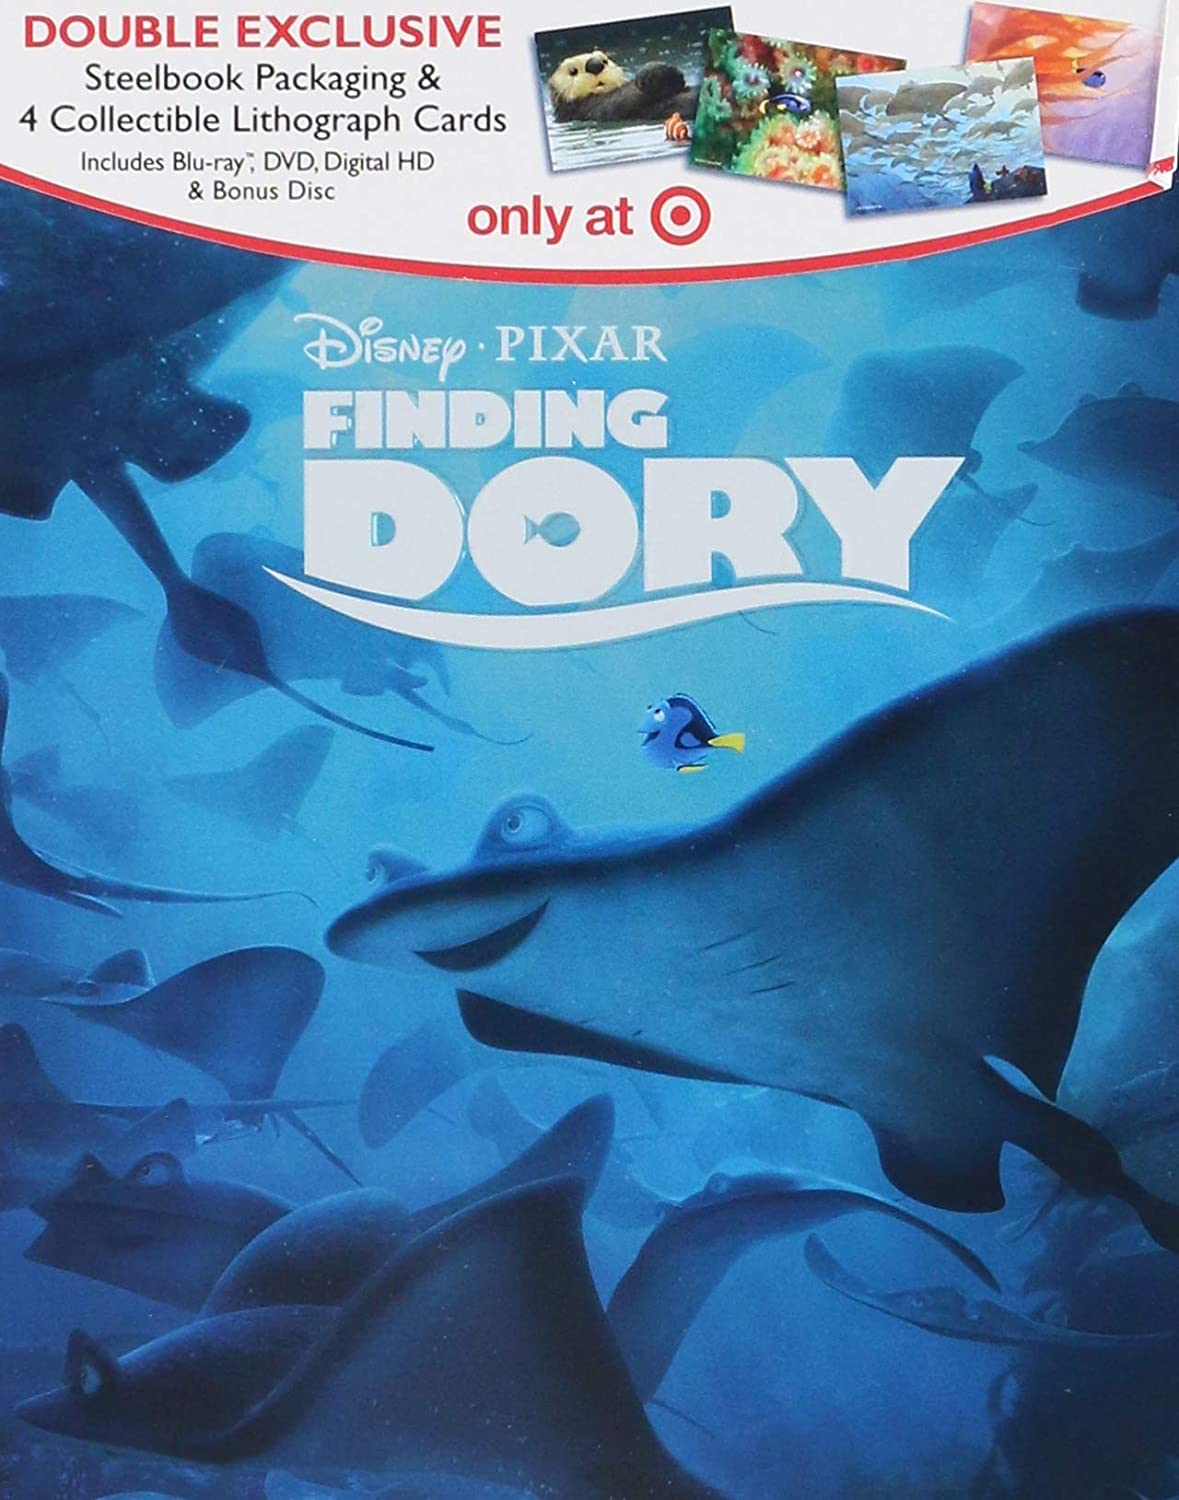 Finding Dory Double Exclusive Steelbook Packaging With 4 Collectible Lithograph Cards Blu Ray Dvd Digital Hd And Disc Blu Ray Ellen Degeneres Amazon Com Br Dvd E Blu Ray